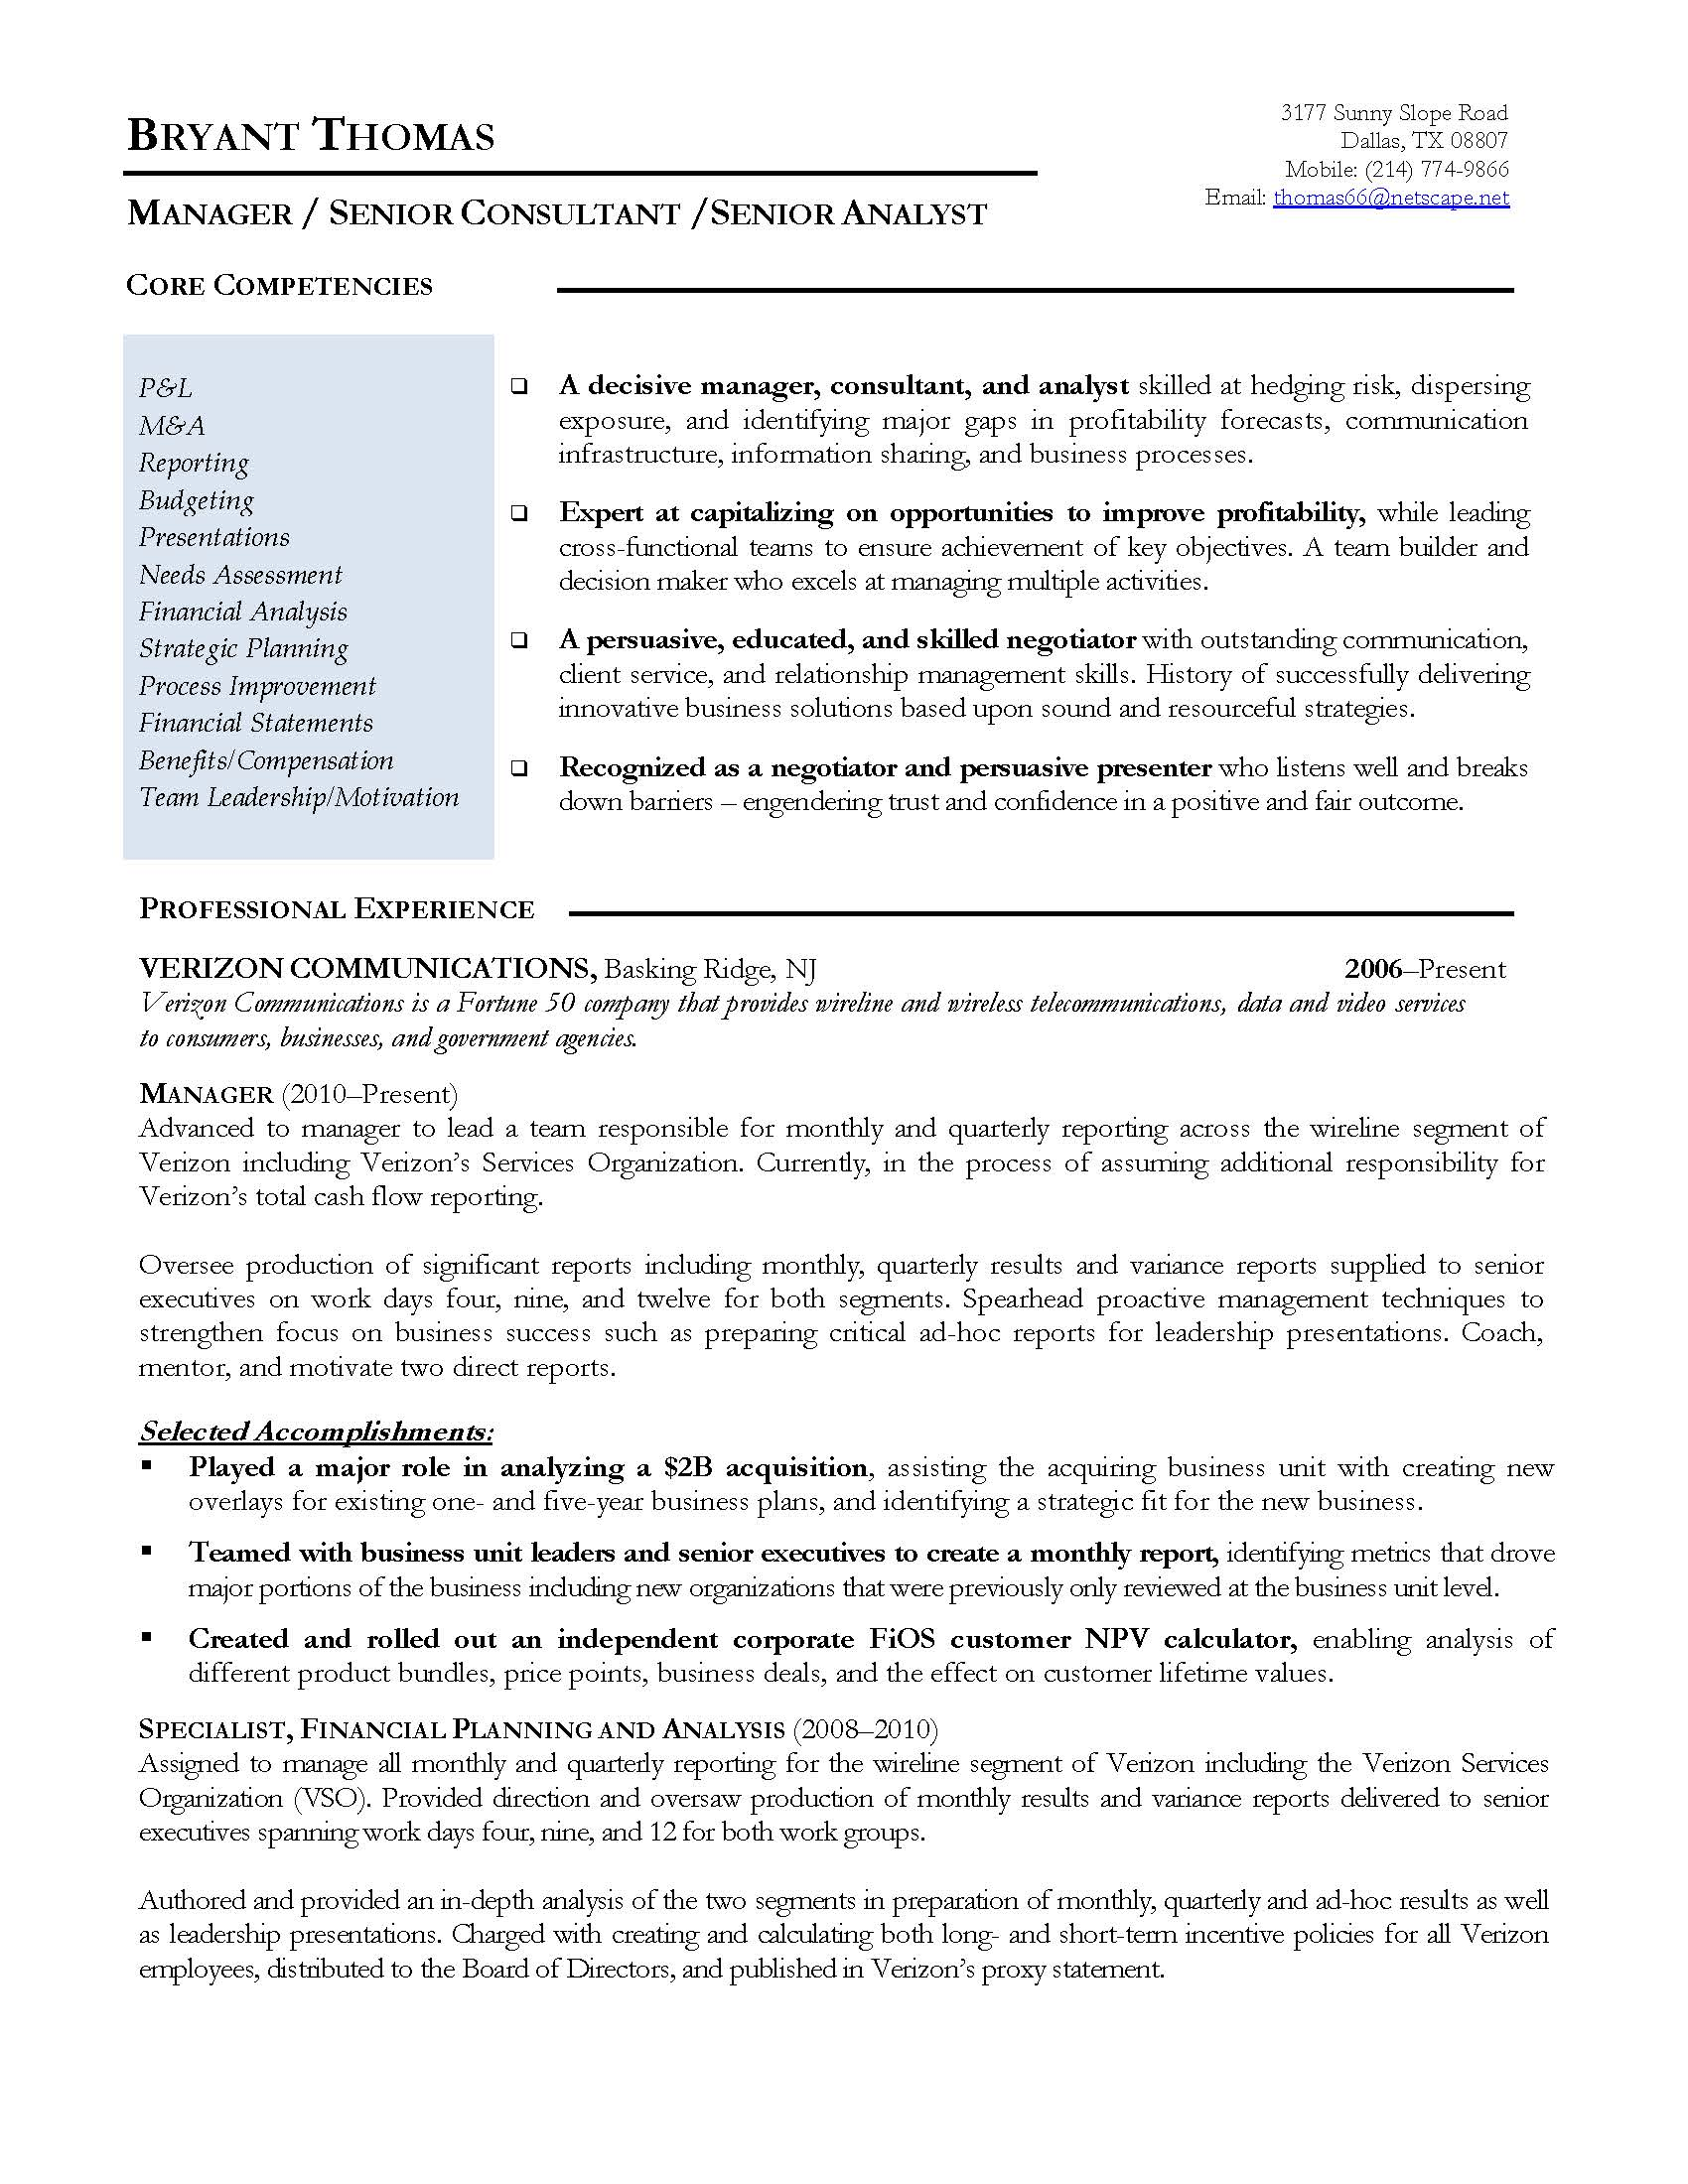 business unit manager sample resume insurance attorney cover letter